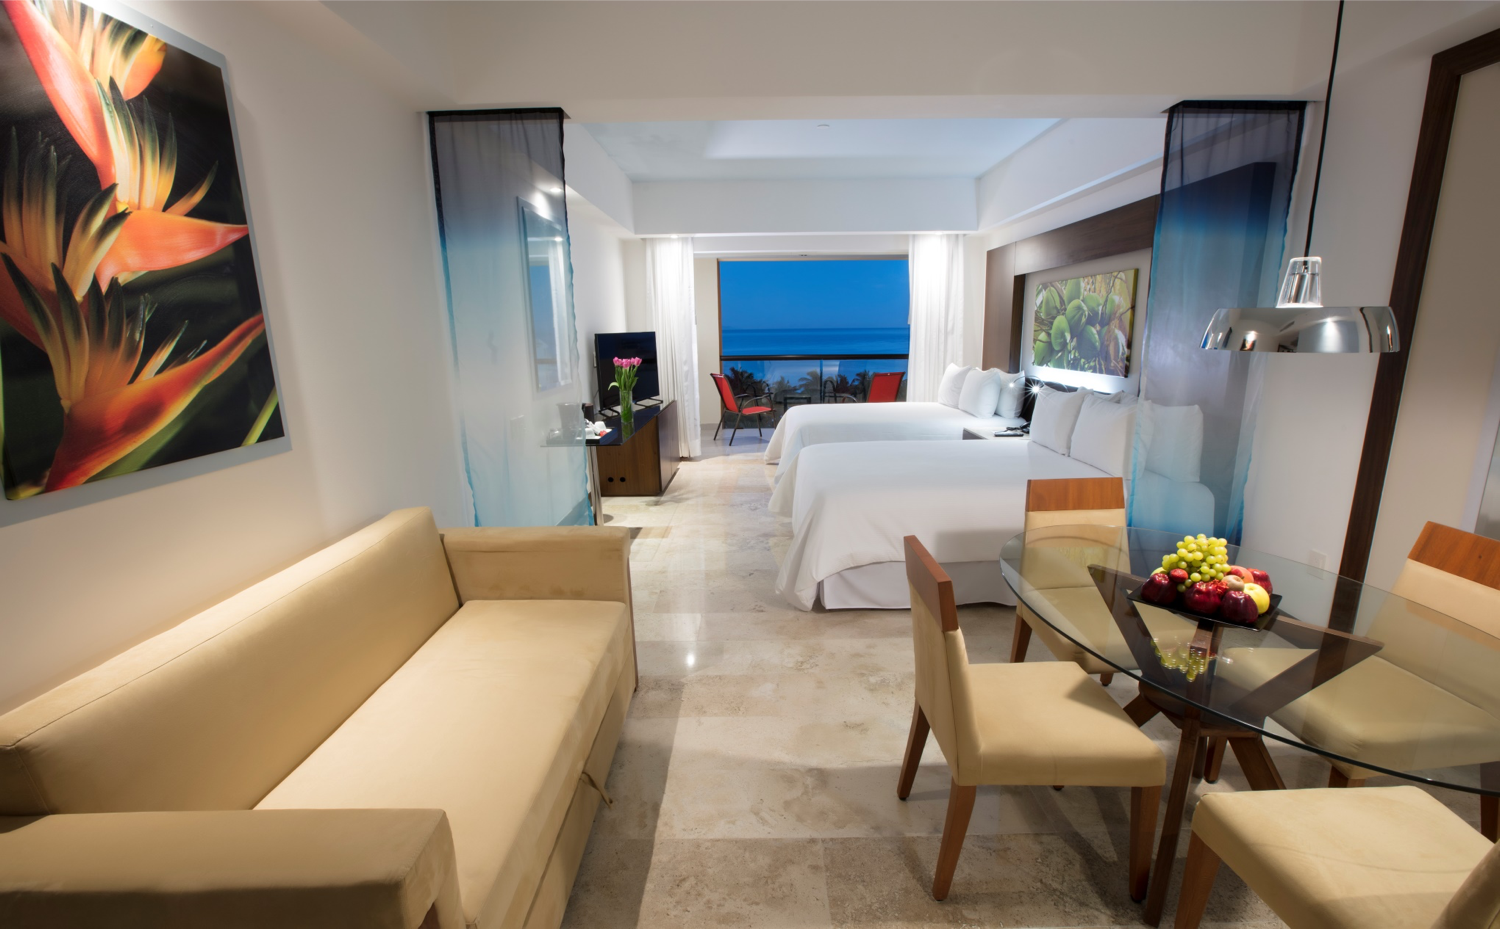 You pay one flat rate - What's Included: $2,000+ Value Junior Suite Ocean View Room w/ Balcony, Taxes, Fees, Gratuities, Meals, Drinks, Welcome & Bon Voyage Reception, Round Trip Transfers, 2 Tours & WiFi.